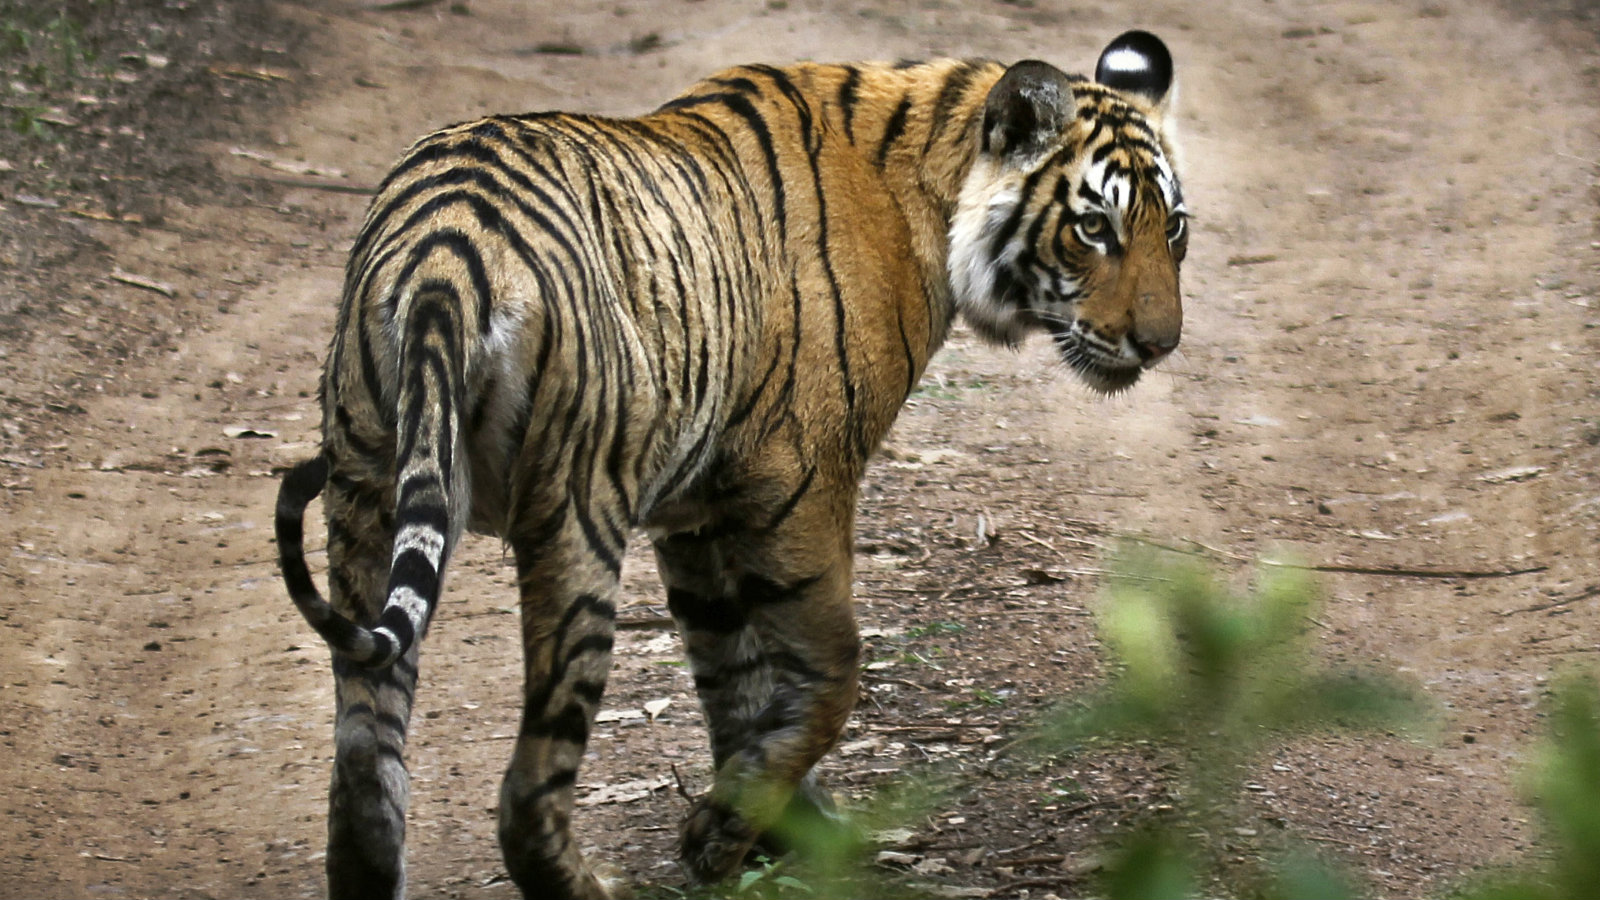 In this April 12, 2015 photo, a tiger walks at the Ranthambore National Park in Sawai Madhopur, India. India's tiger population has gone up 30 percent in just four years. The government lauded the news as astonishing evidence of victory in conservation. But independent scientists say such an increase - to 2,226 big cats - in so short a time doesn't make sense. They worry an enthusiastic new government under Prime Minister Narendra Modi is misinterpreting the numbers, trumpeting false claims of a thriving tiger population that could hurt conservation in the long run.